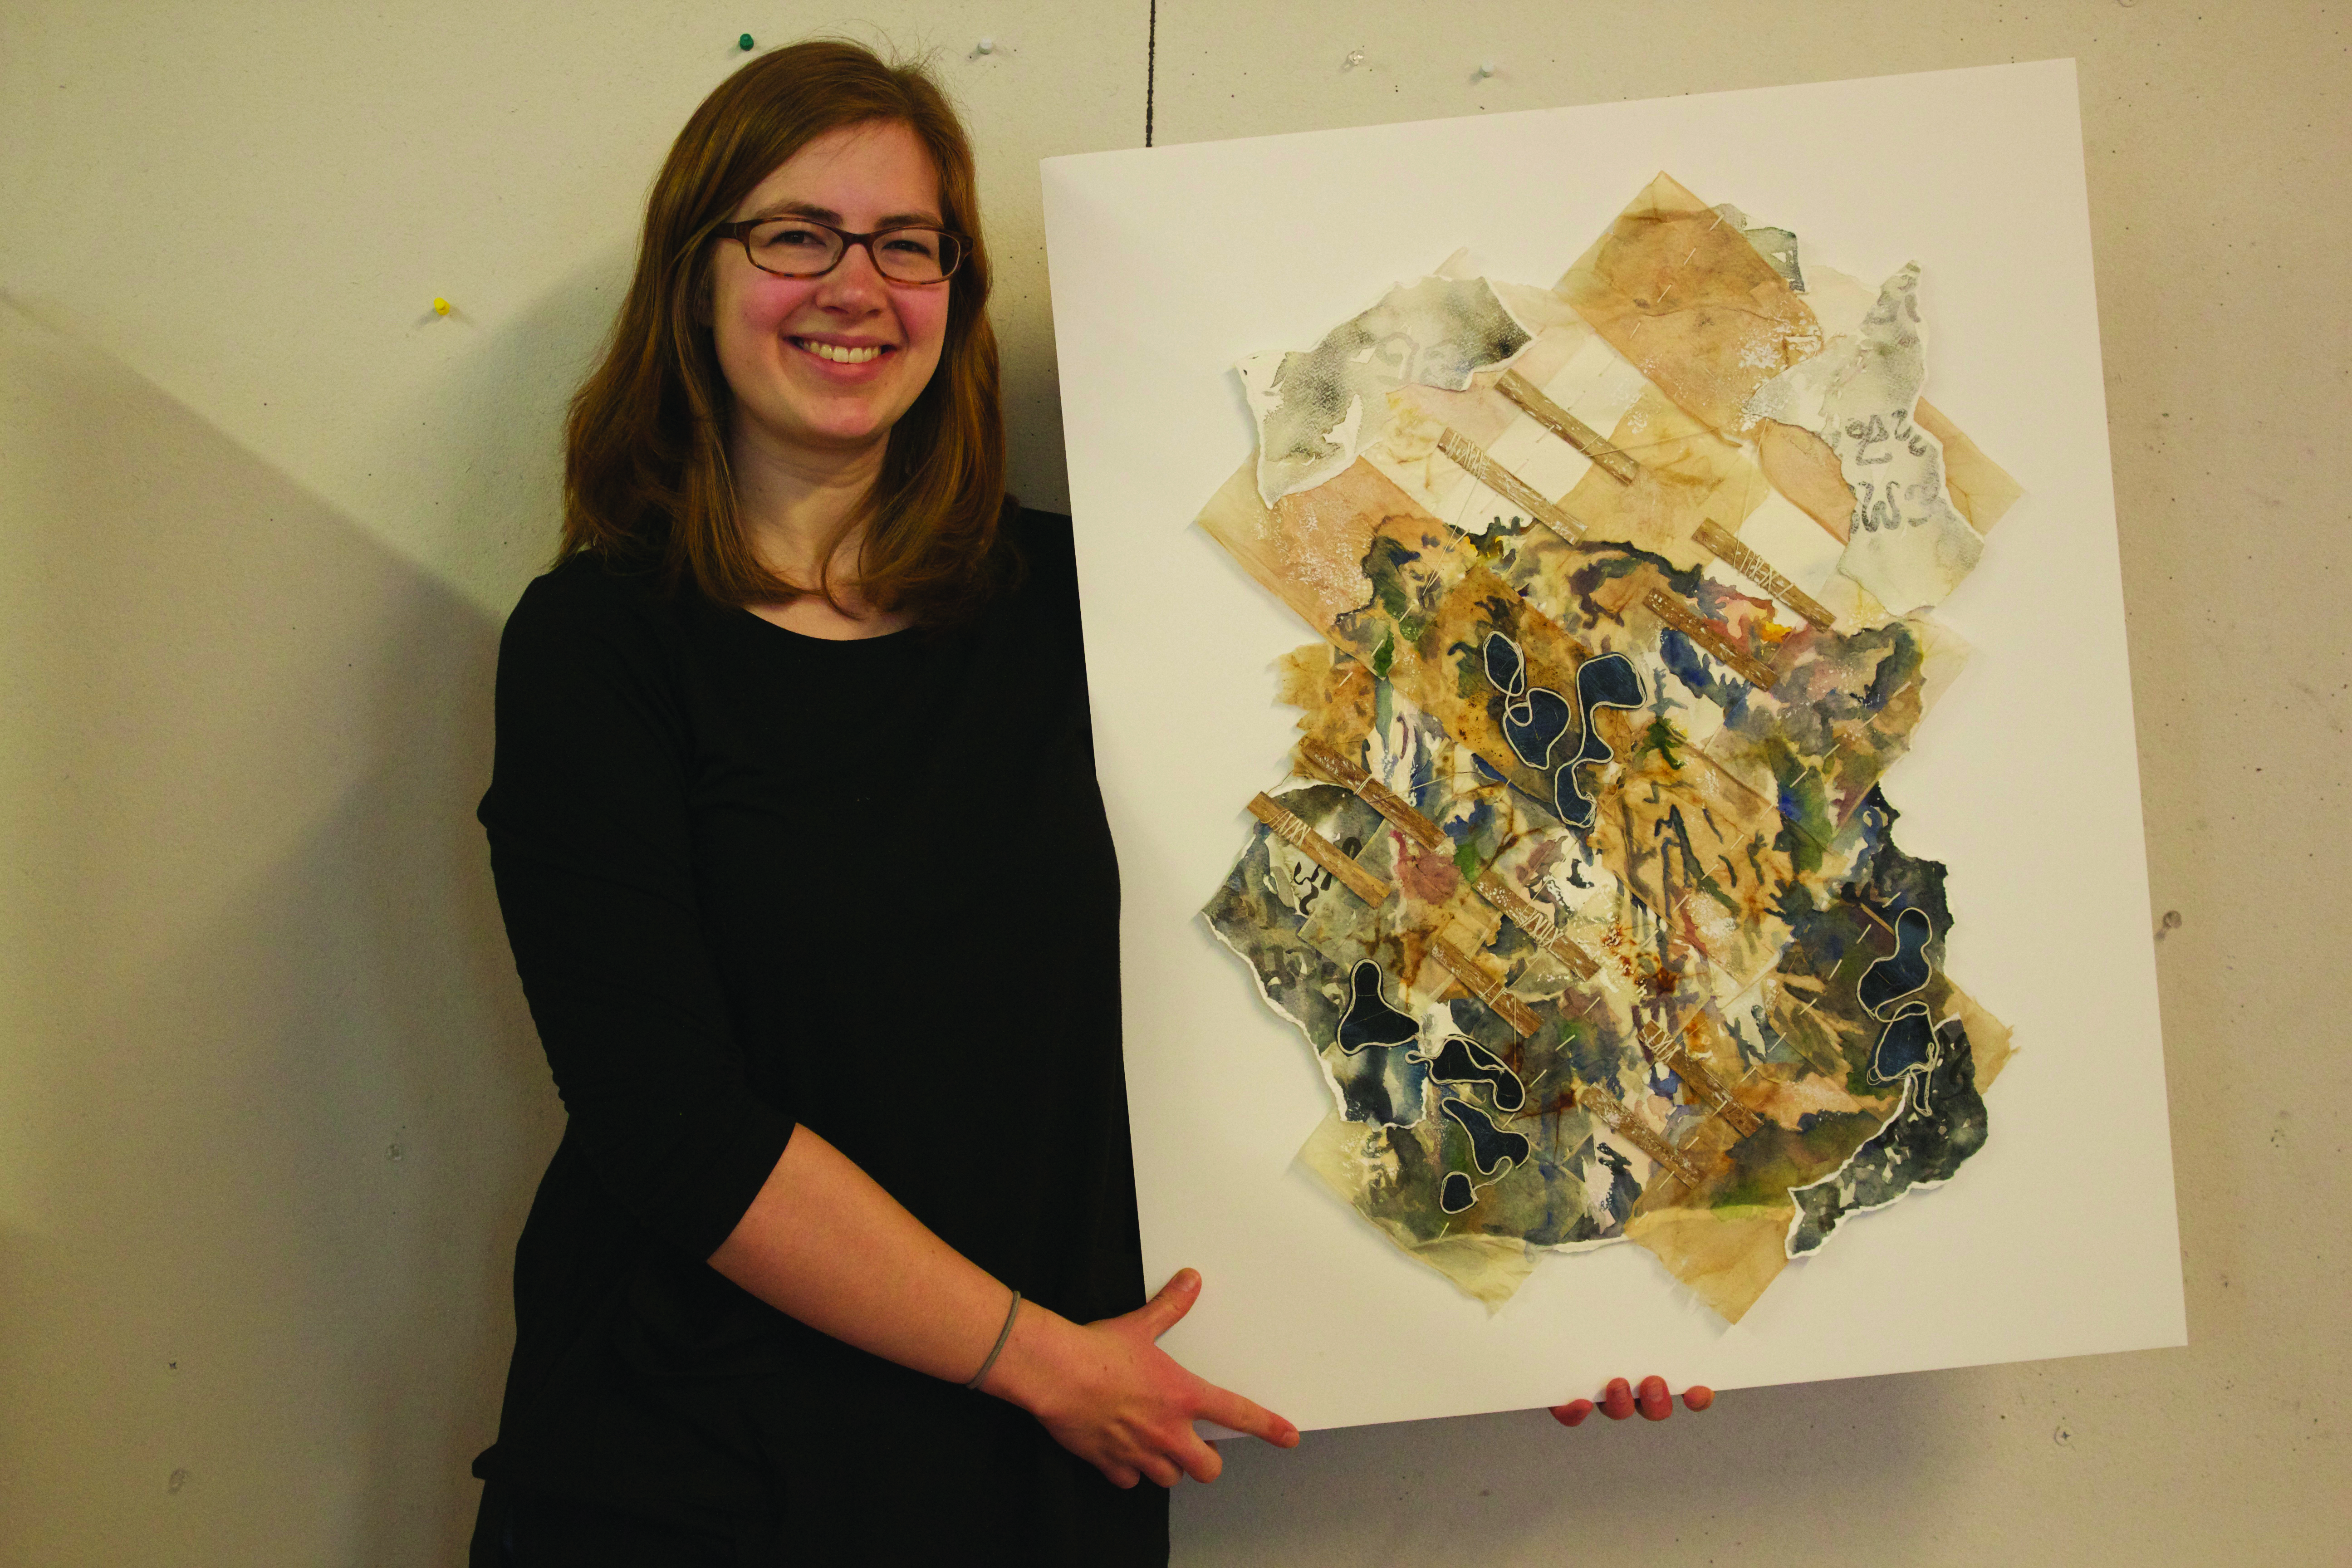 Kate Yoder holds one of her paintings and smiles for the camera